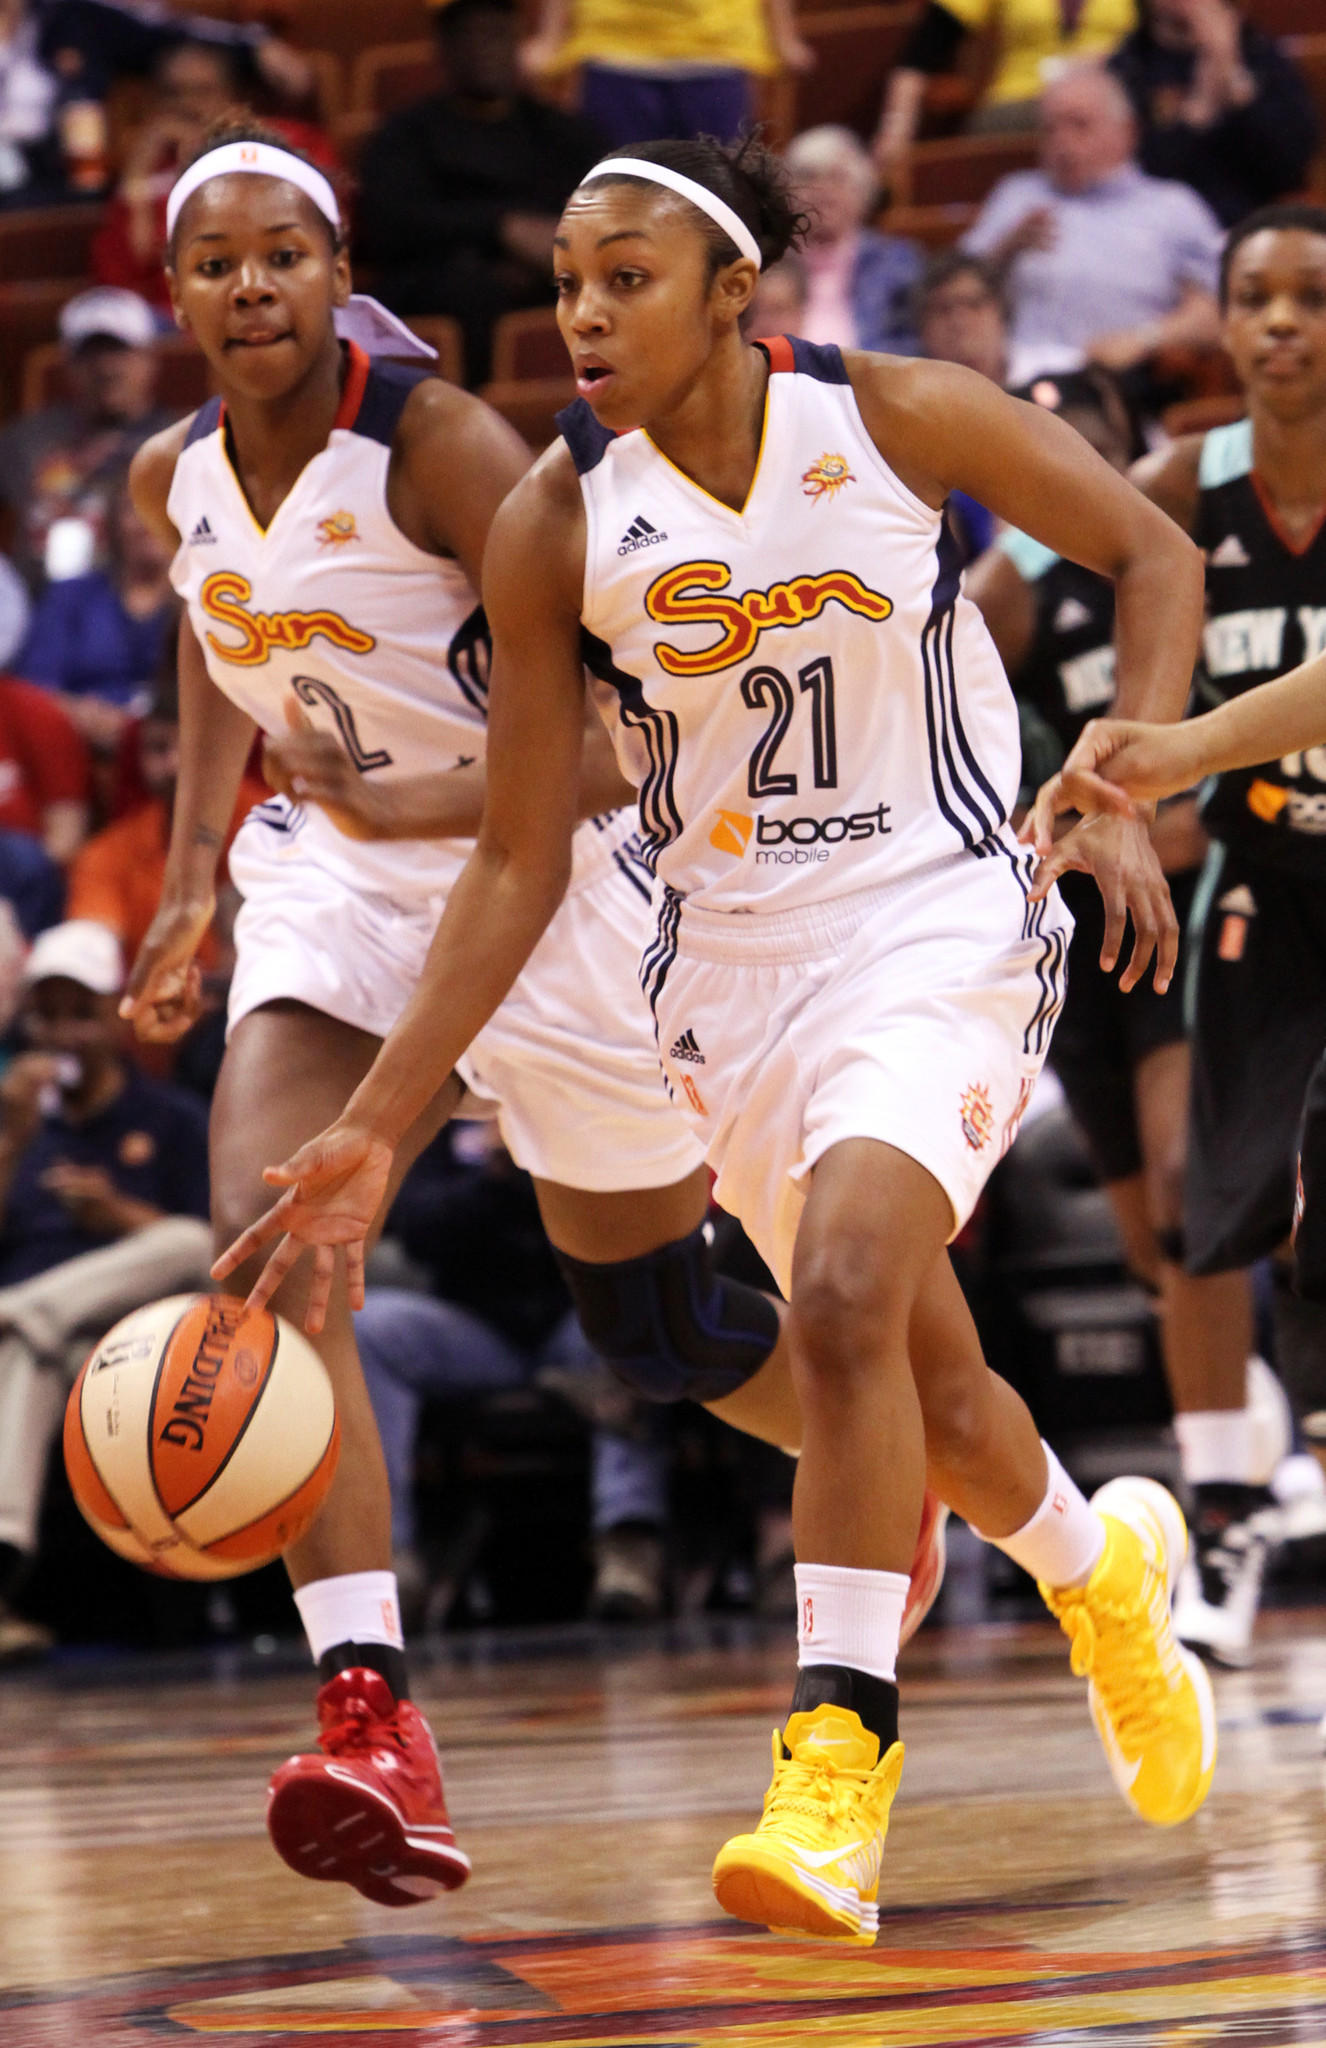 5/4/2014 - WNBA, CT Sun vs NY Liberty - CT Sun #21 Renee Montgomery moves the ball with #2 DeNesha Stallworth. Stan Godlewski/Special to the Courant